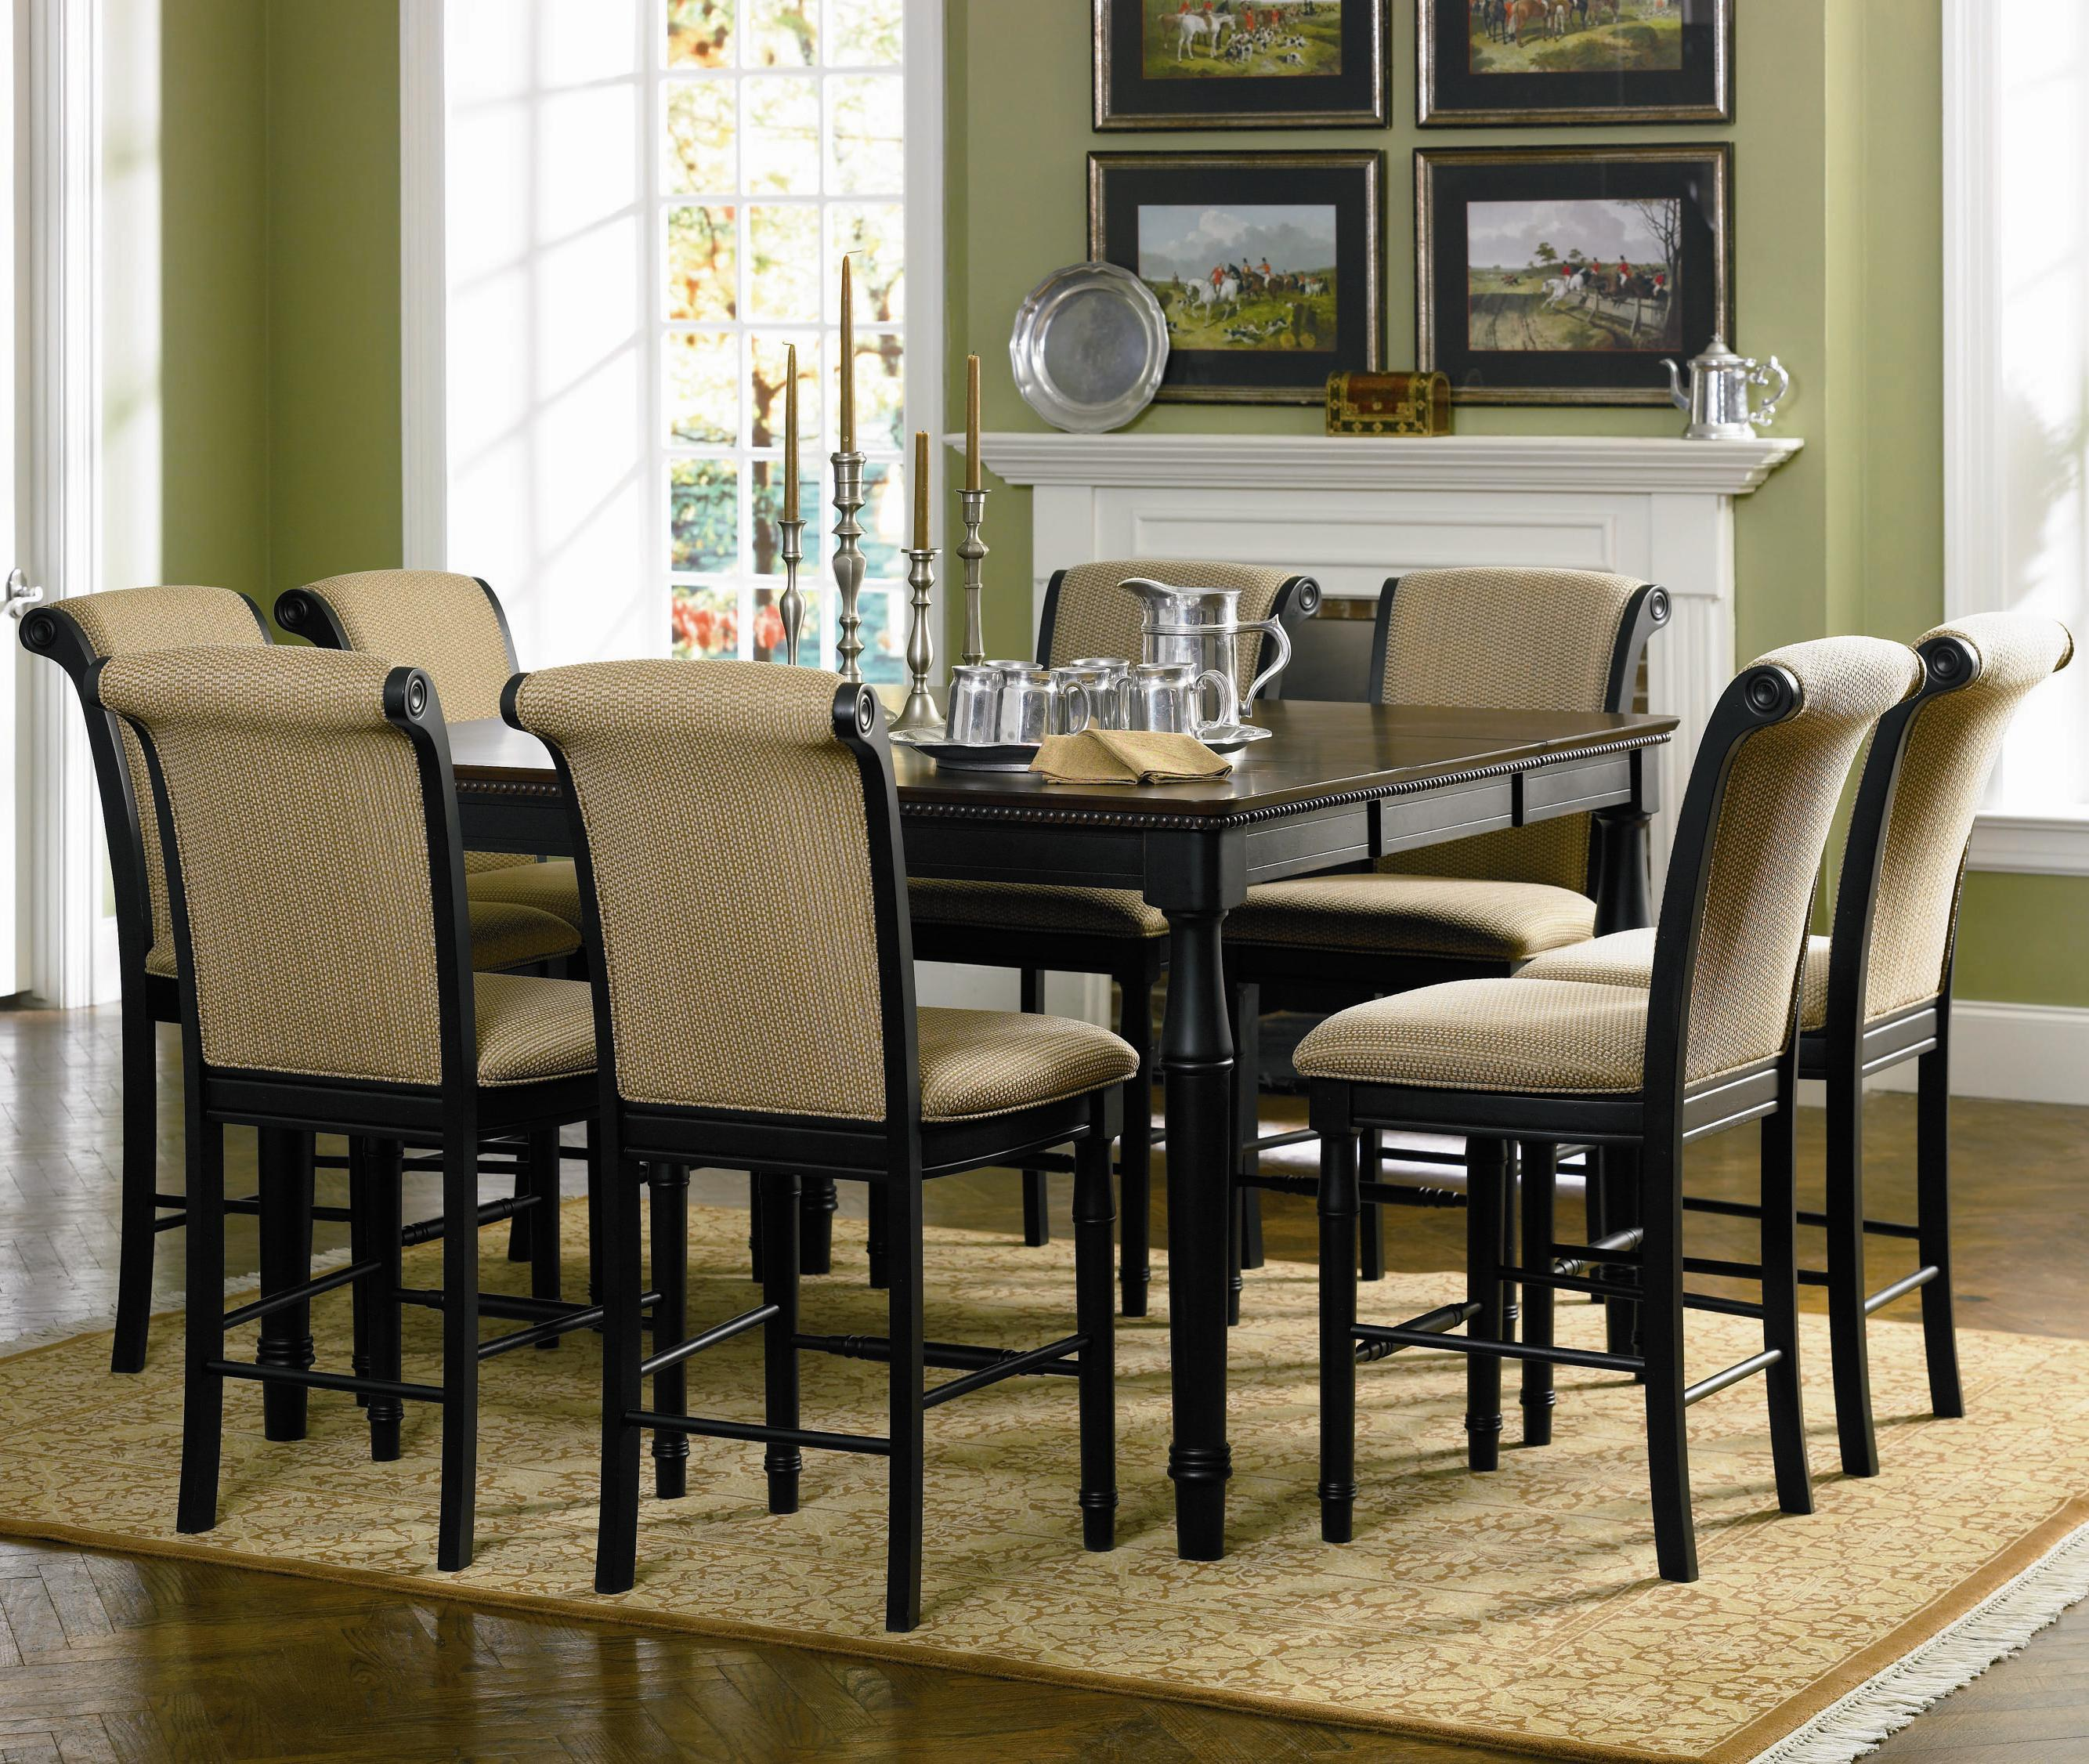 counter height kitchen chairs Coaster Cabrillo Counter Height Chair with Fabric Rolled Back and Seat Coaster Fine Furniture